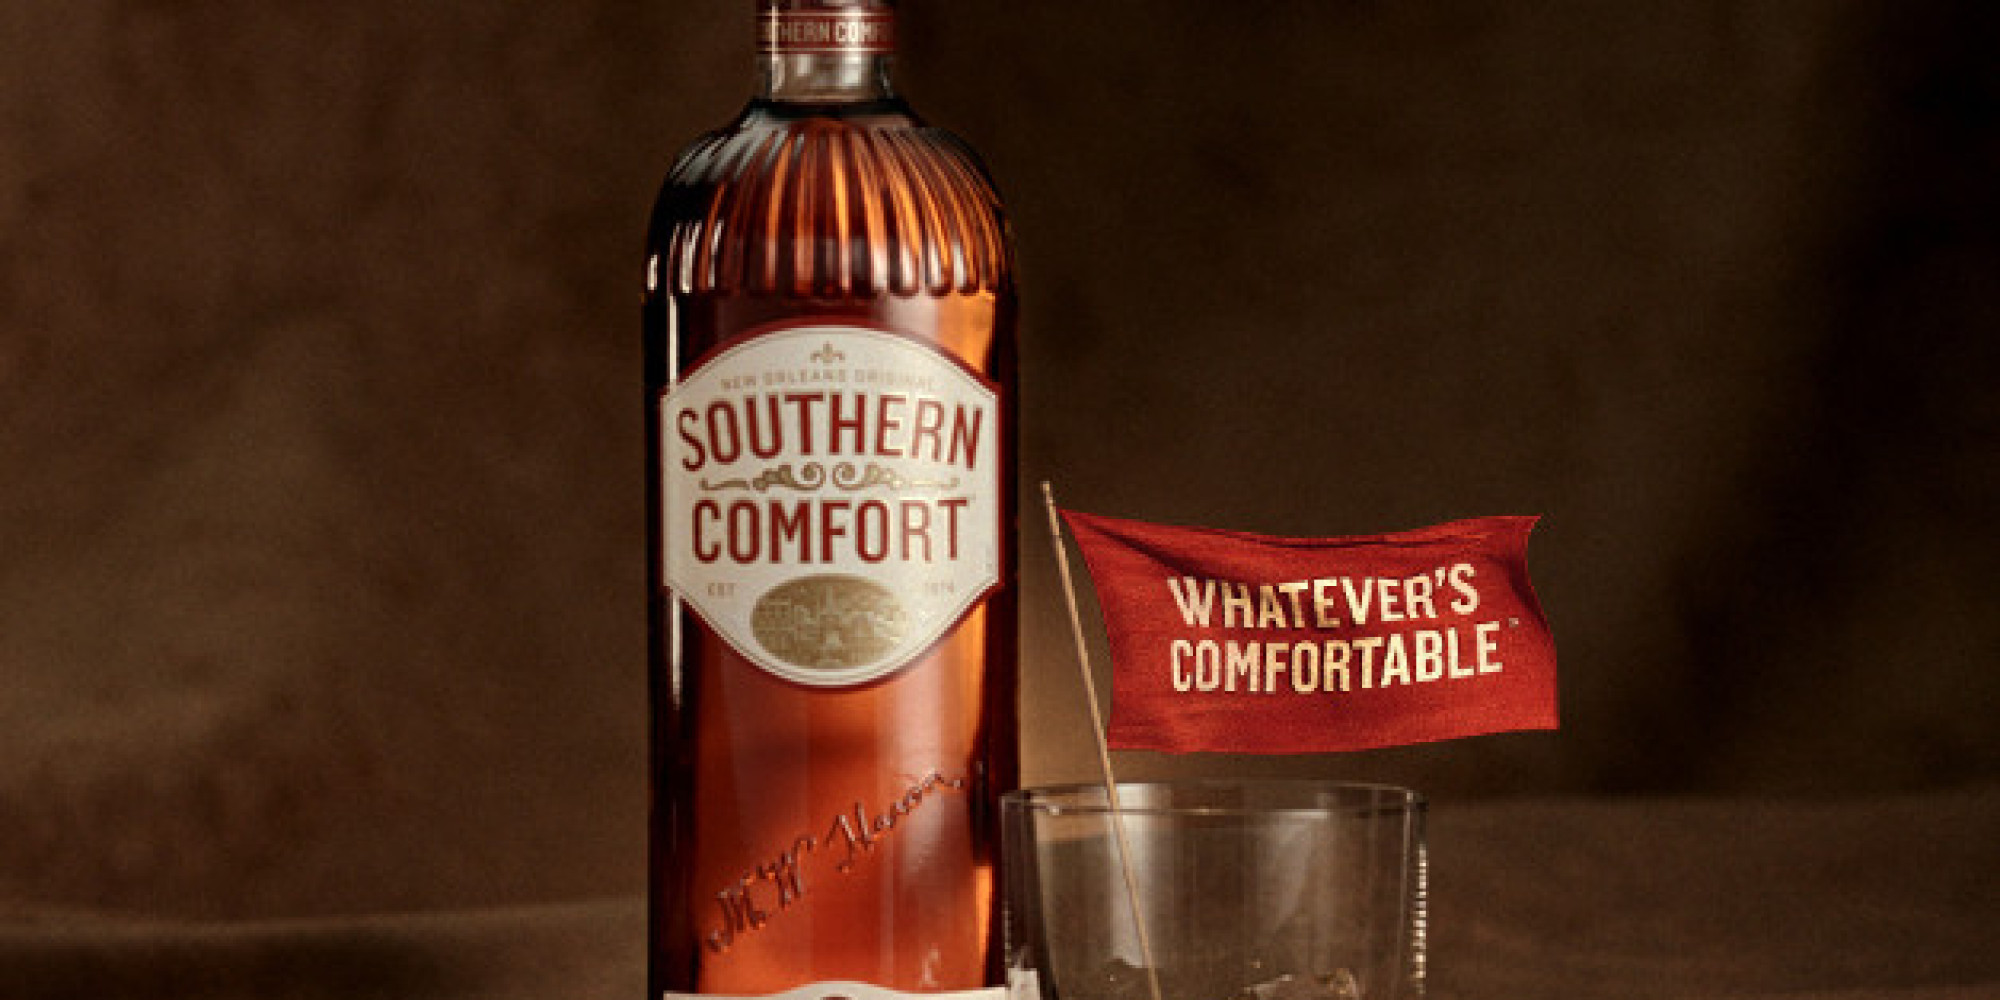 So What Exactly Is In Southern Comfort Anyway